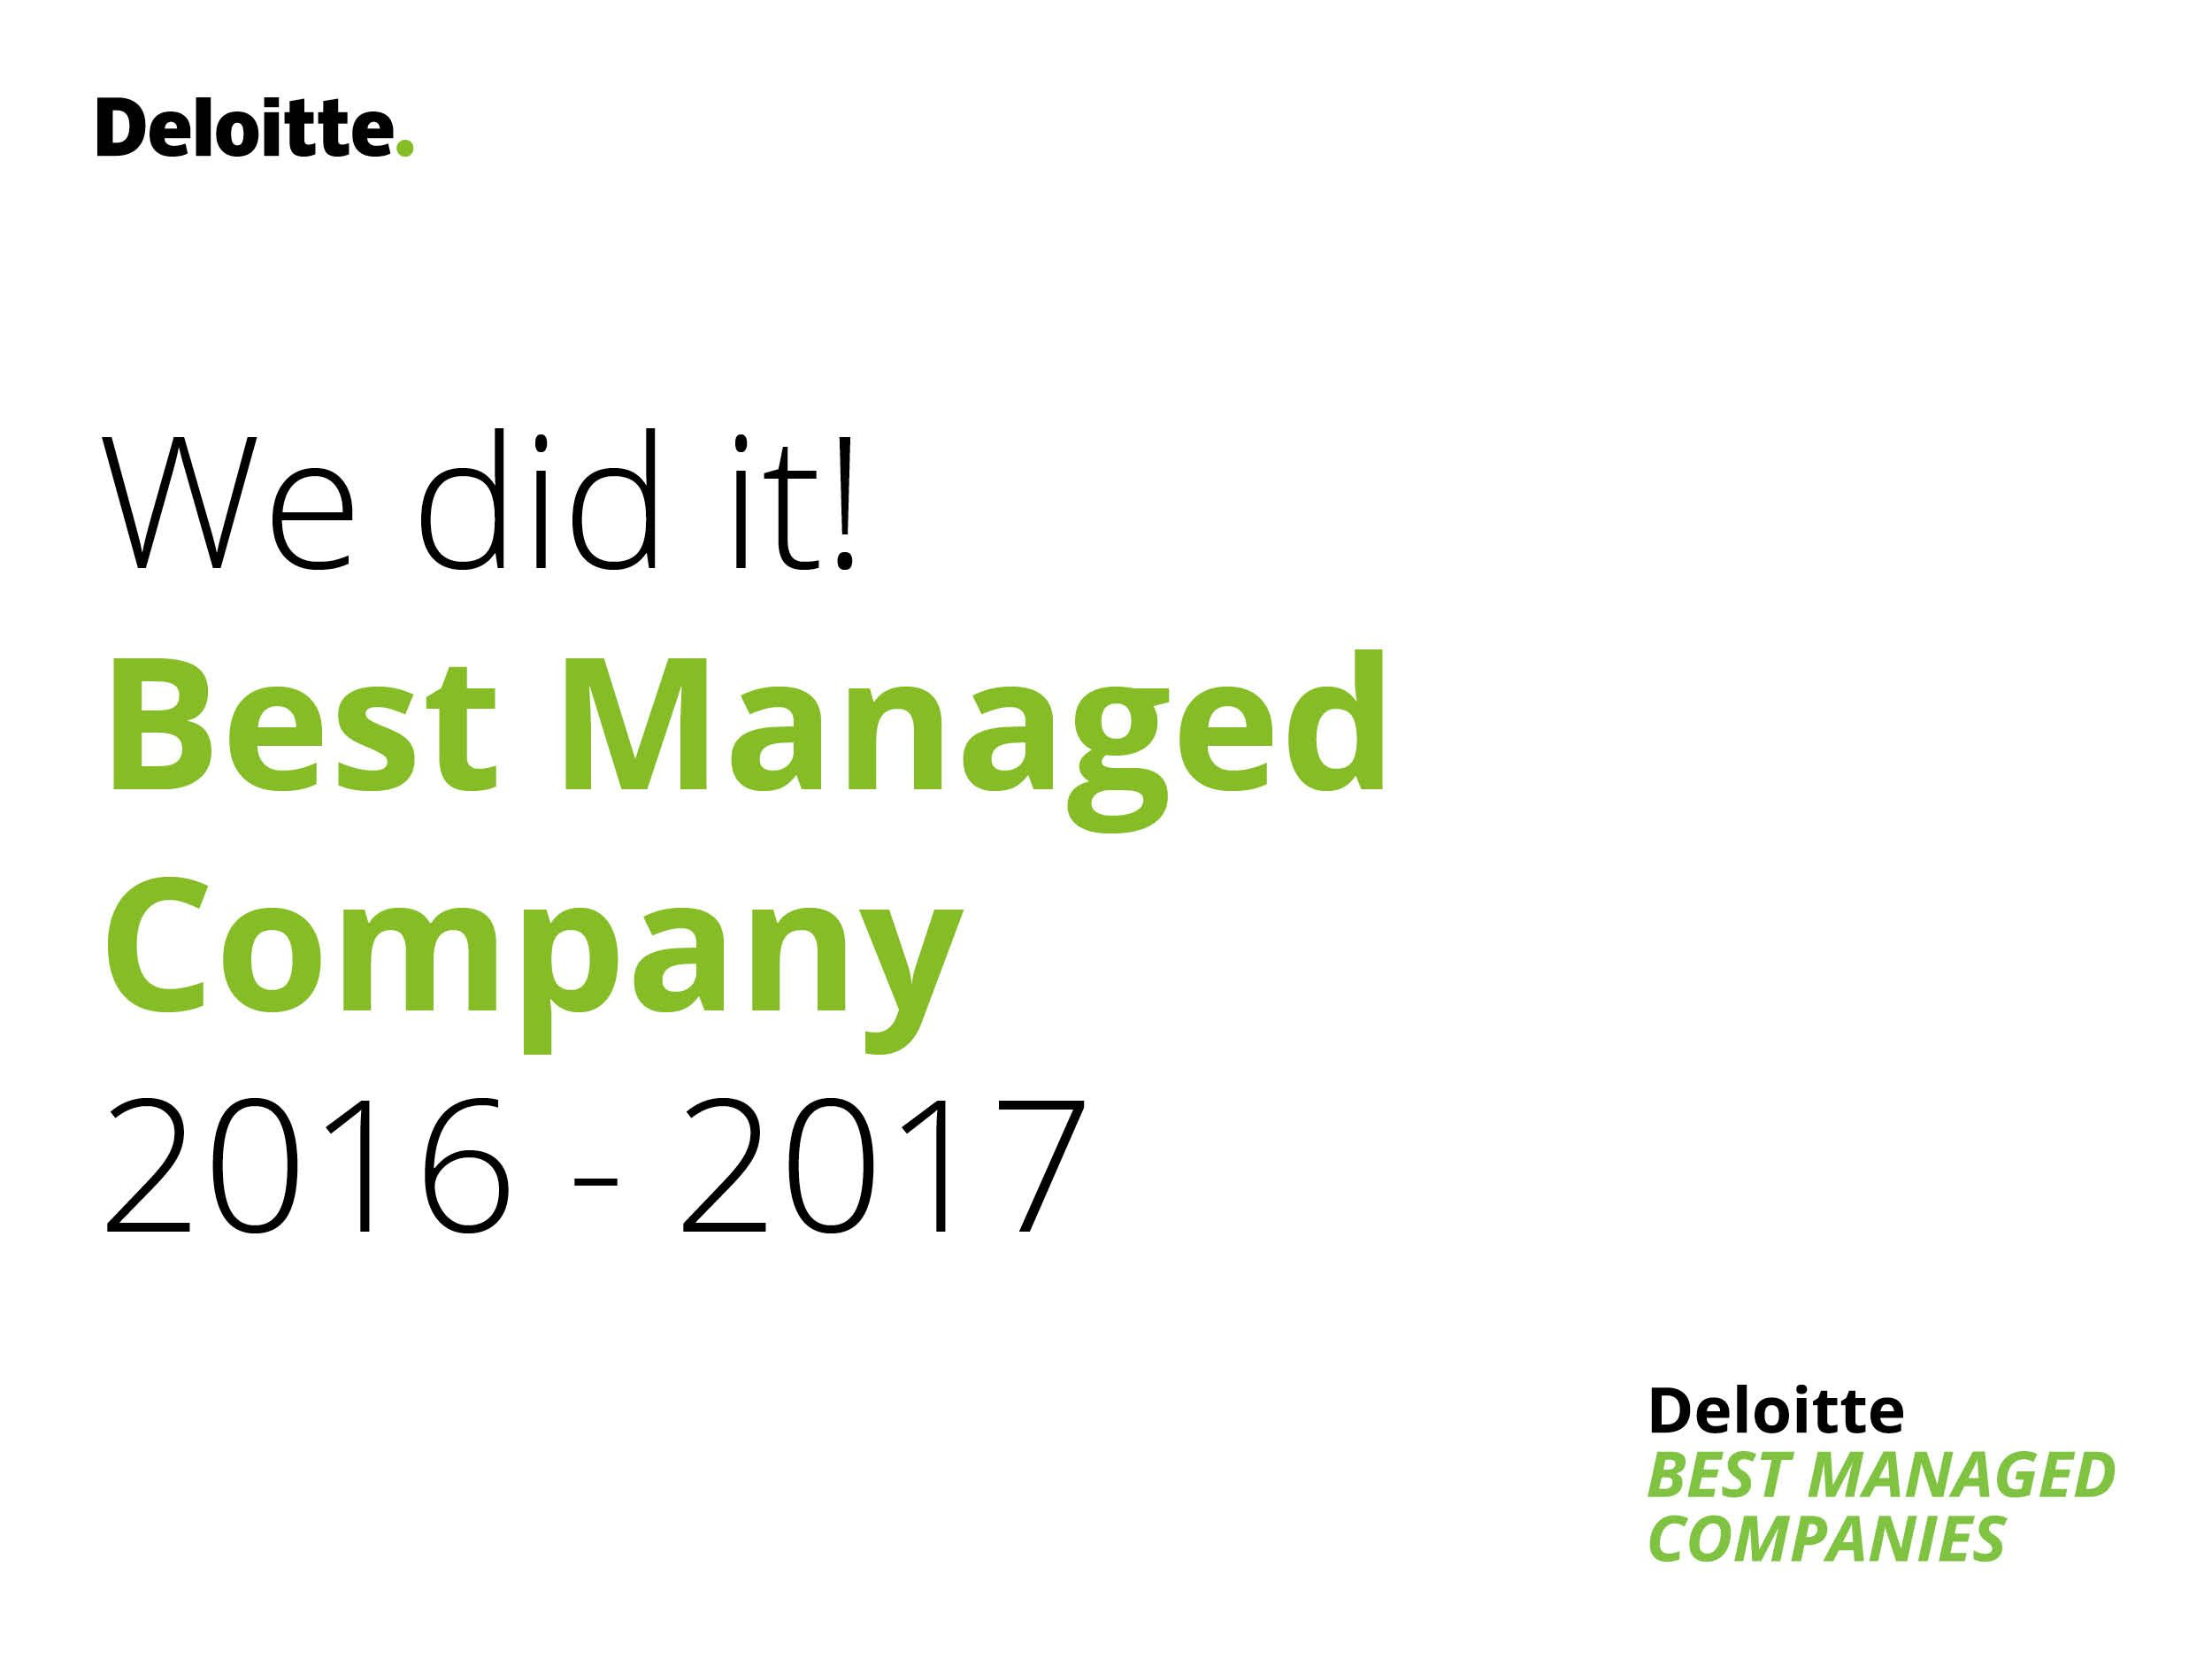 Modderkolk Projects & Maintenance BV uit Wijchen opnieuw bekroond tot Best Managed Company 2016-2017